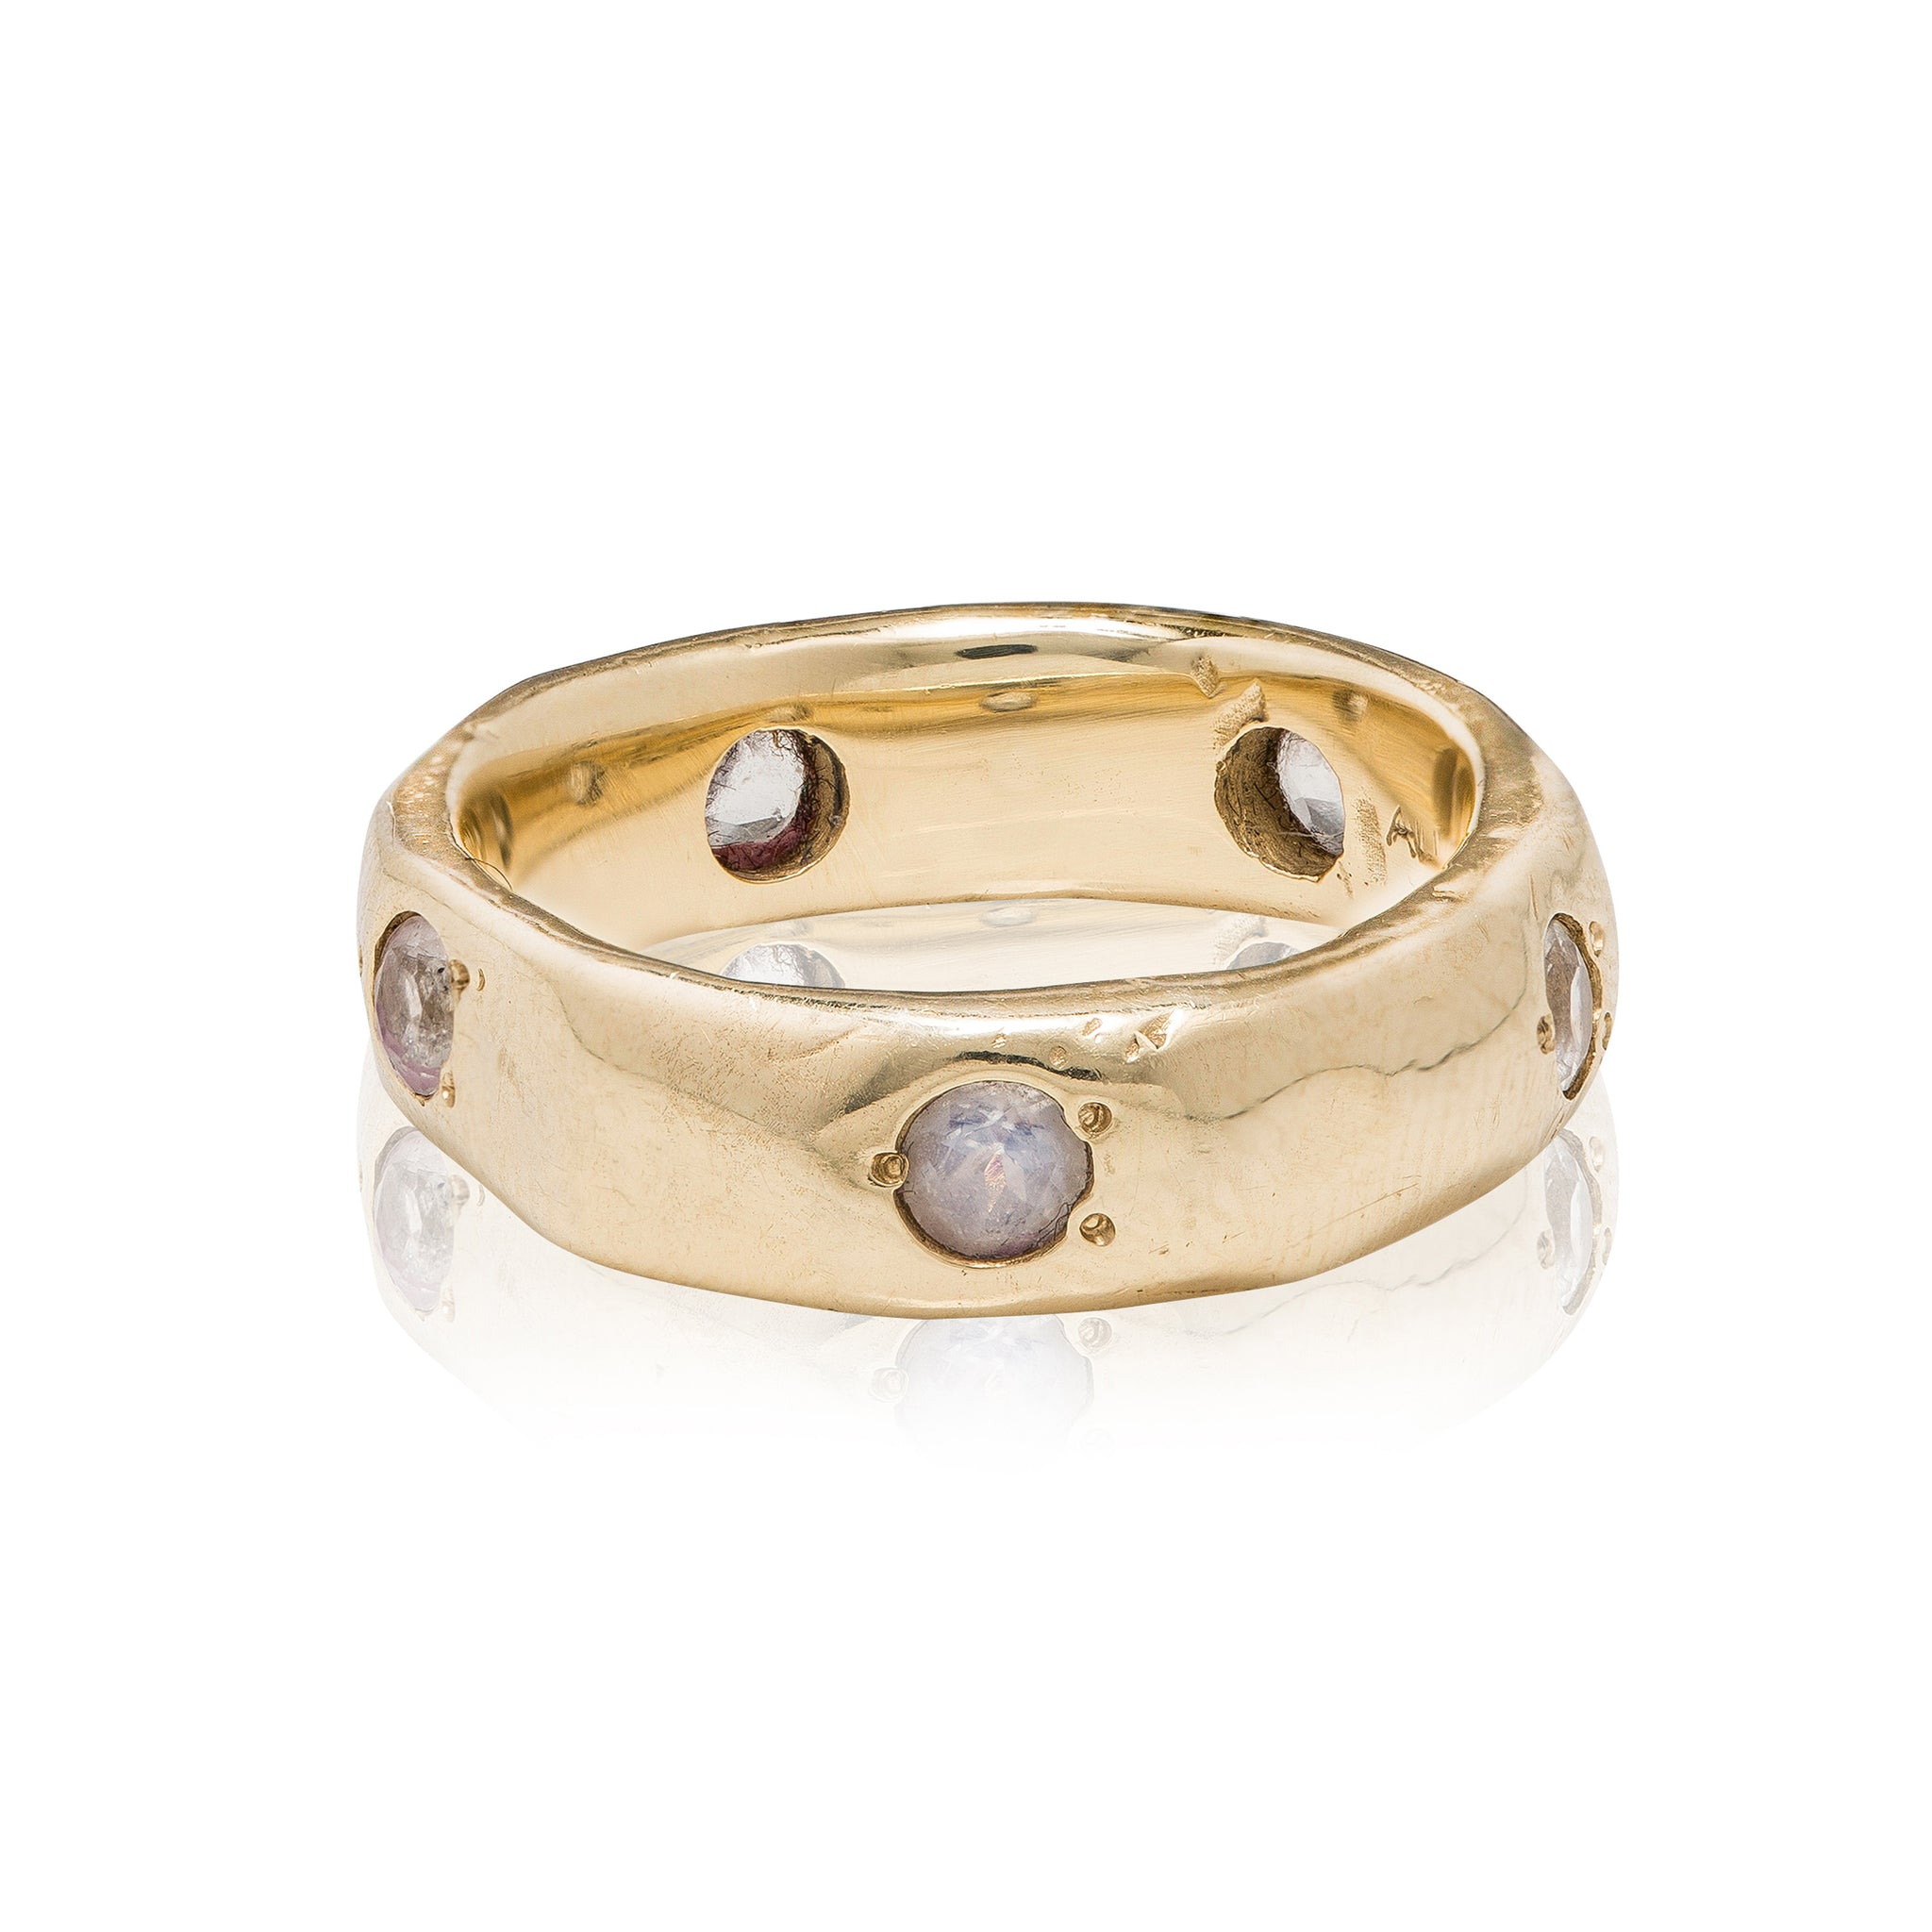 14k gold ring with blue moonstones